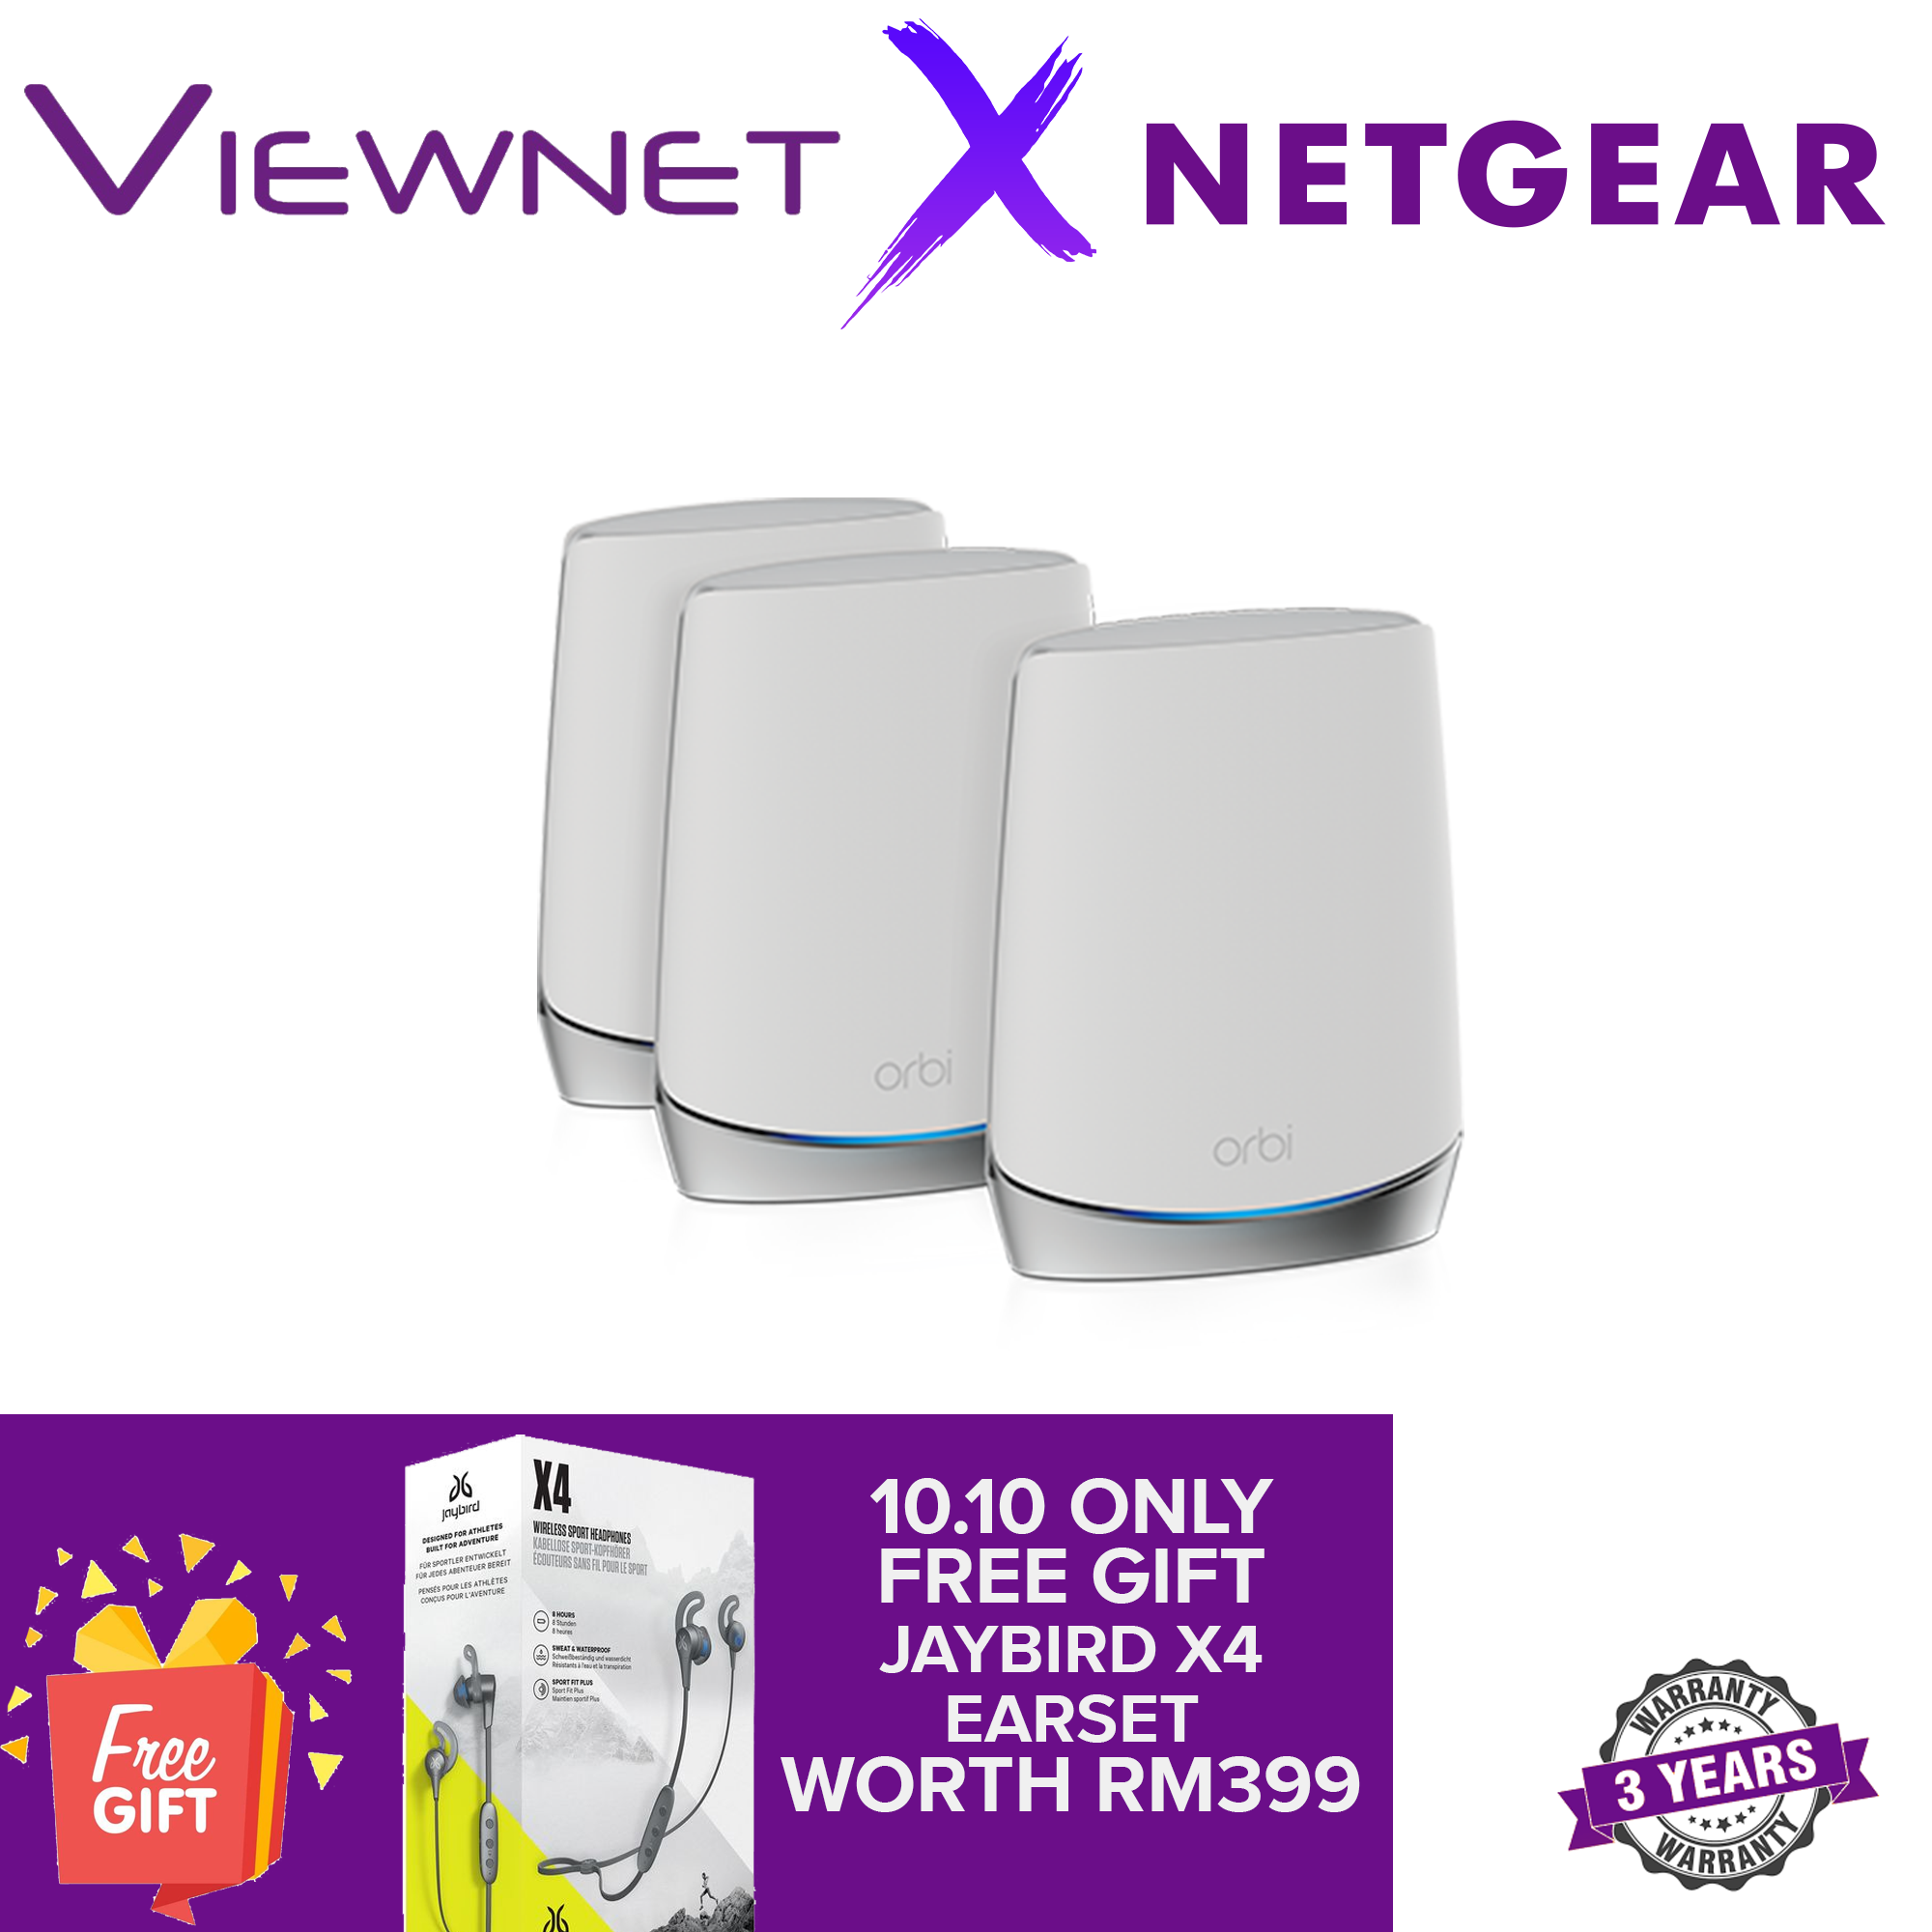 NETGEAR Orbi Whole Home Tri-Band Mesh WiFi 6 System (RBK753) – Router with 2 Satellite Extender Coverage up to 5,000 sq. ft. and 40+ Devices Mesh AX4200 WiFi 6 (Up to 4.2Gbps)